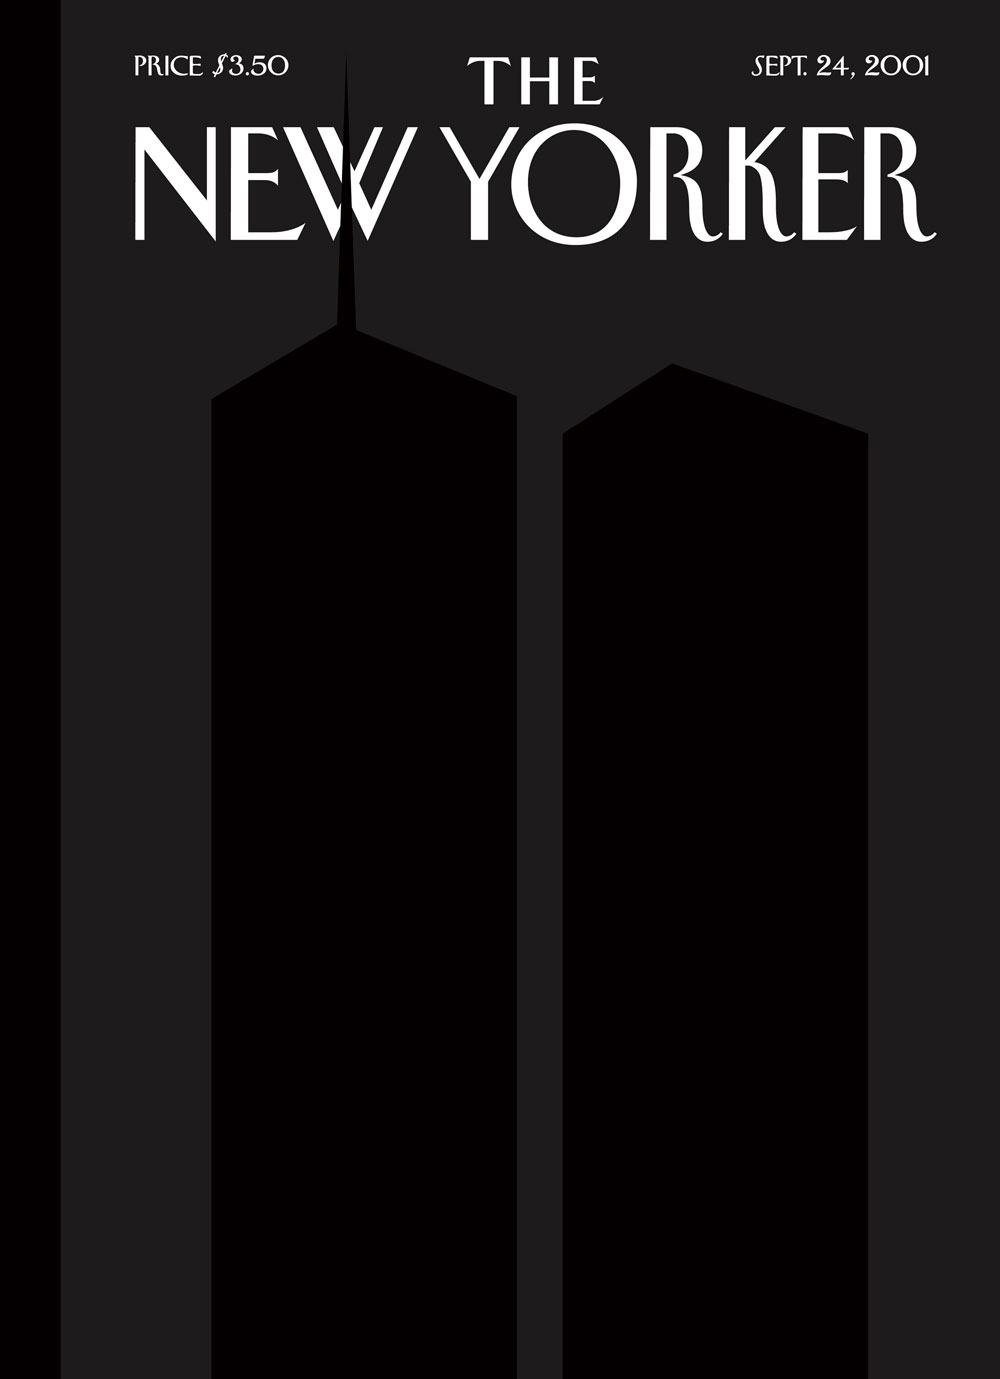 New Yorker 9-11 Cover